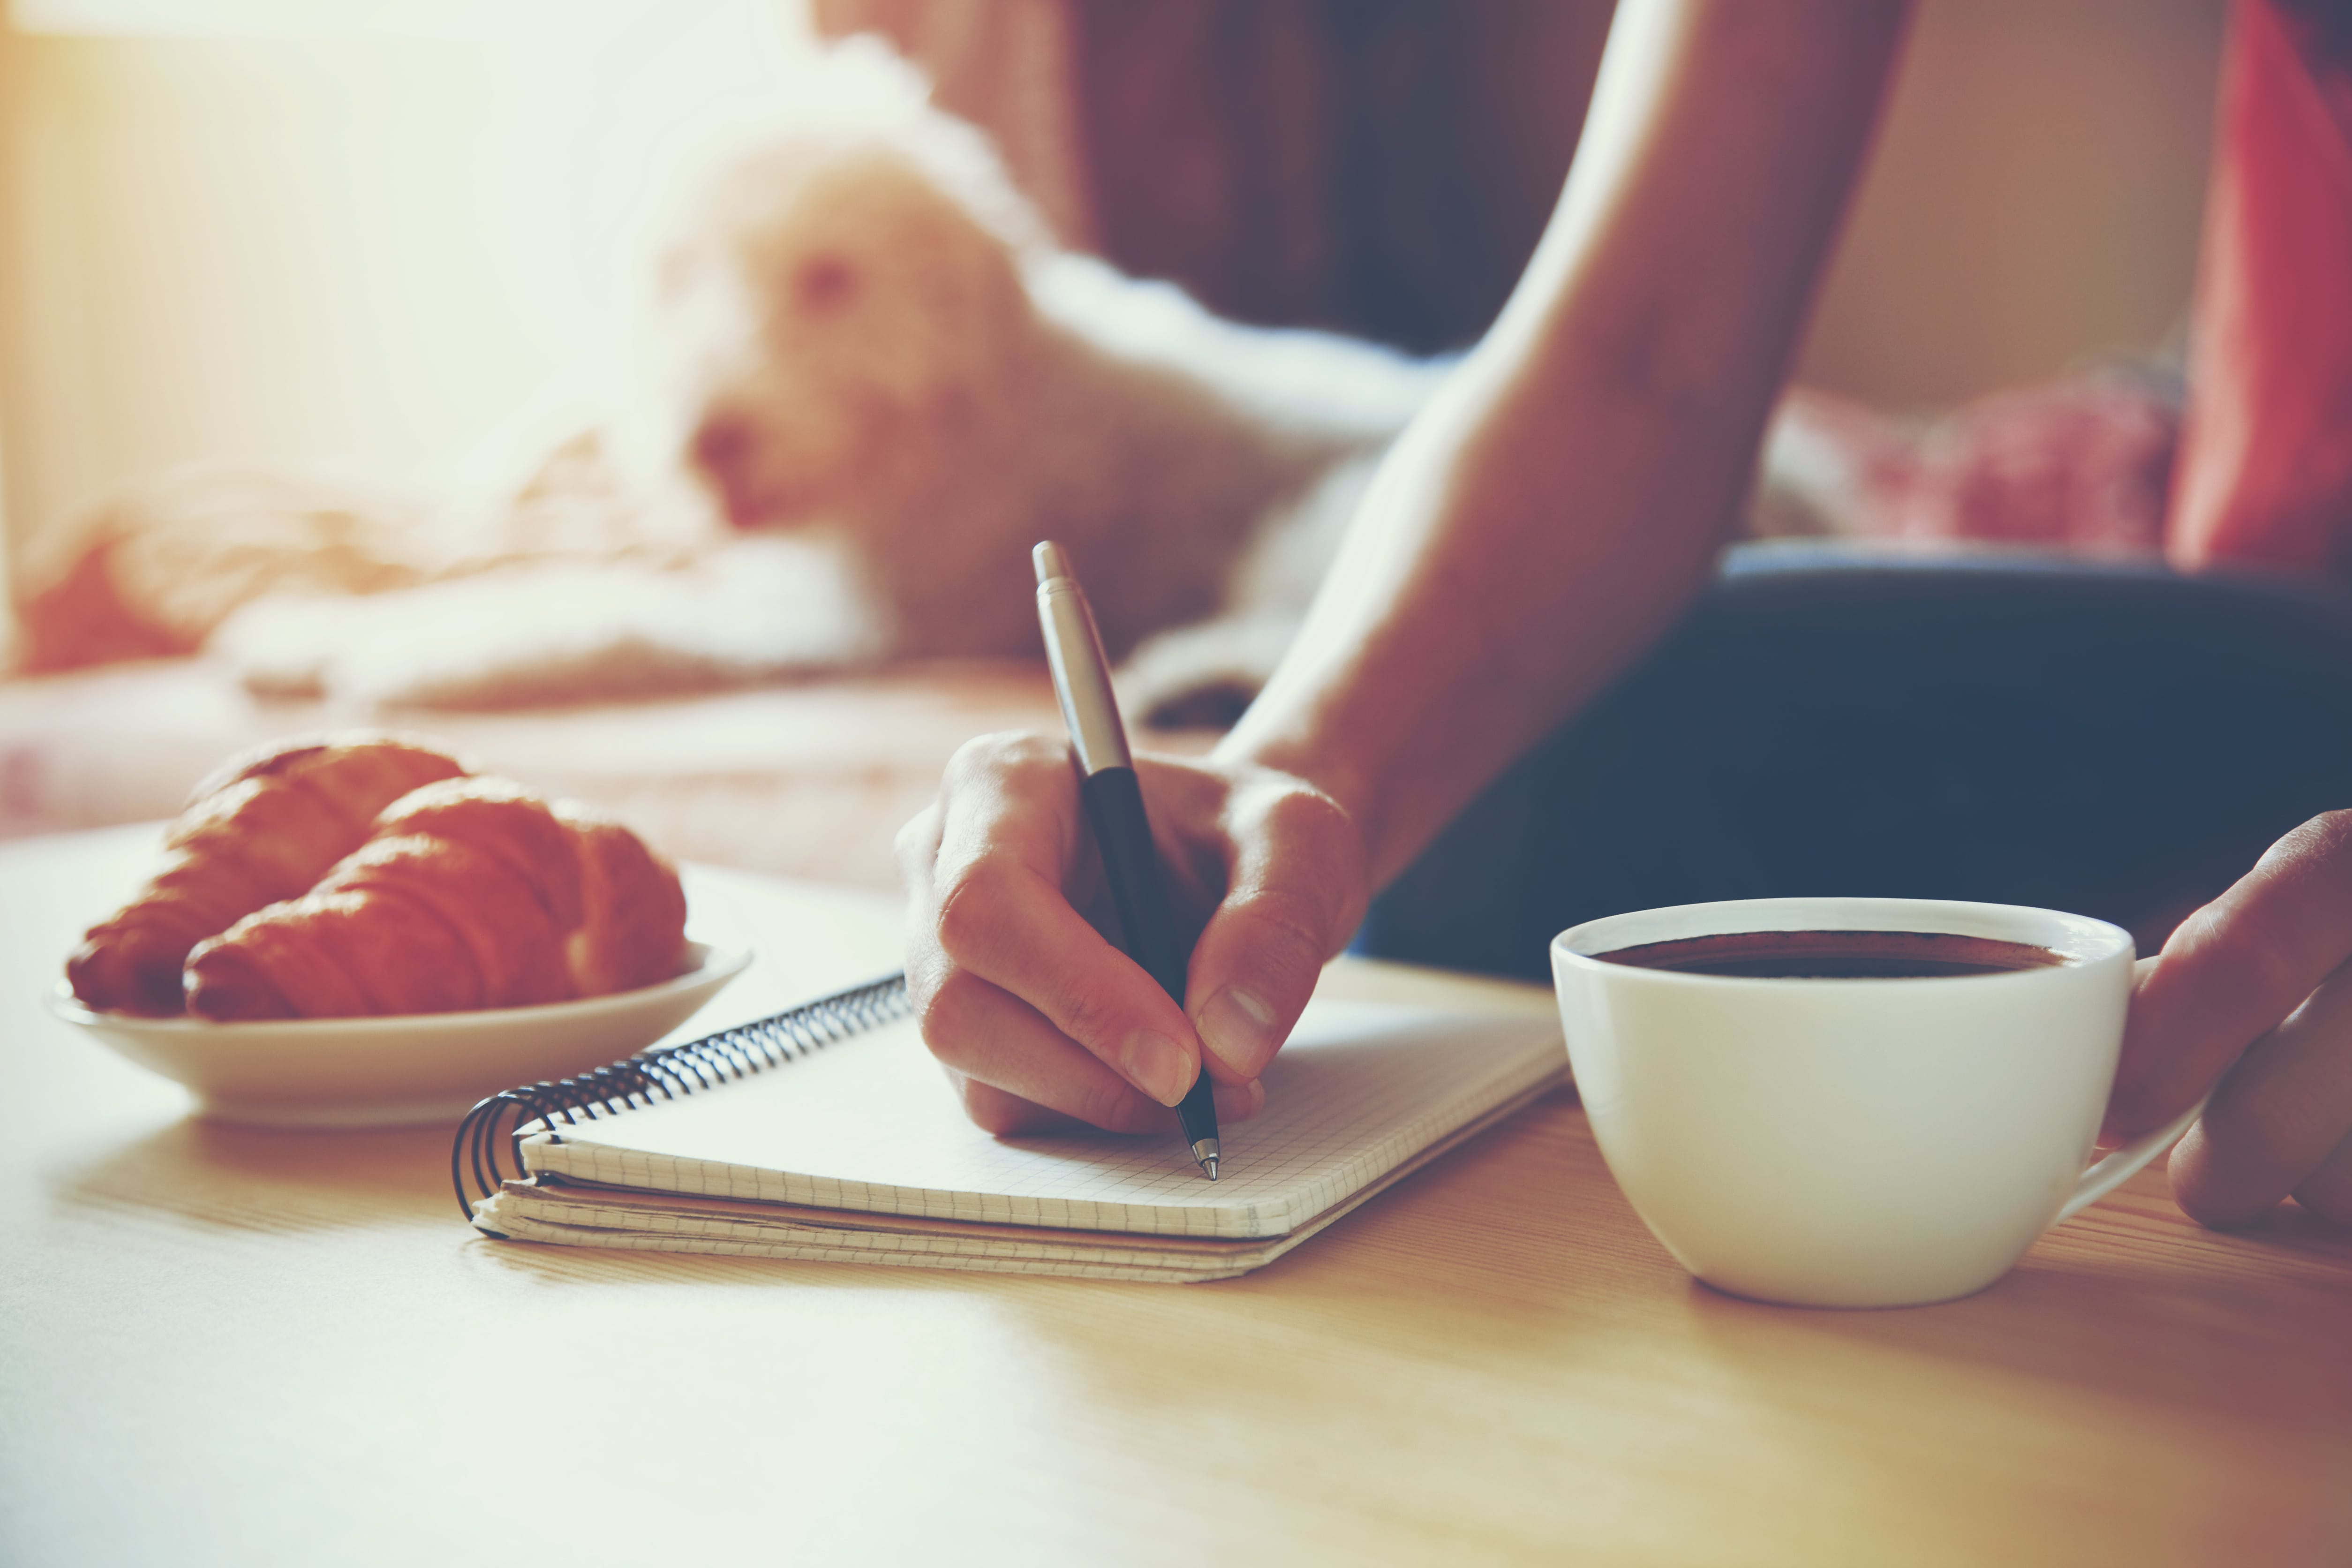 A young woman works on starting her business plan with a cup of coffee in the morning as her dog monitors the situation.